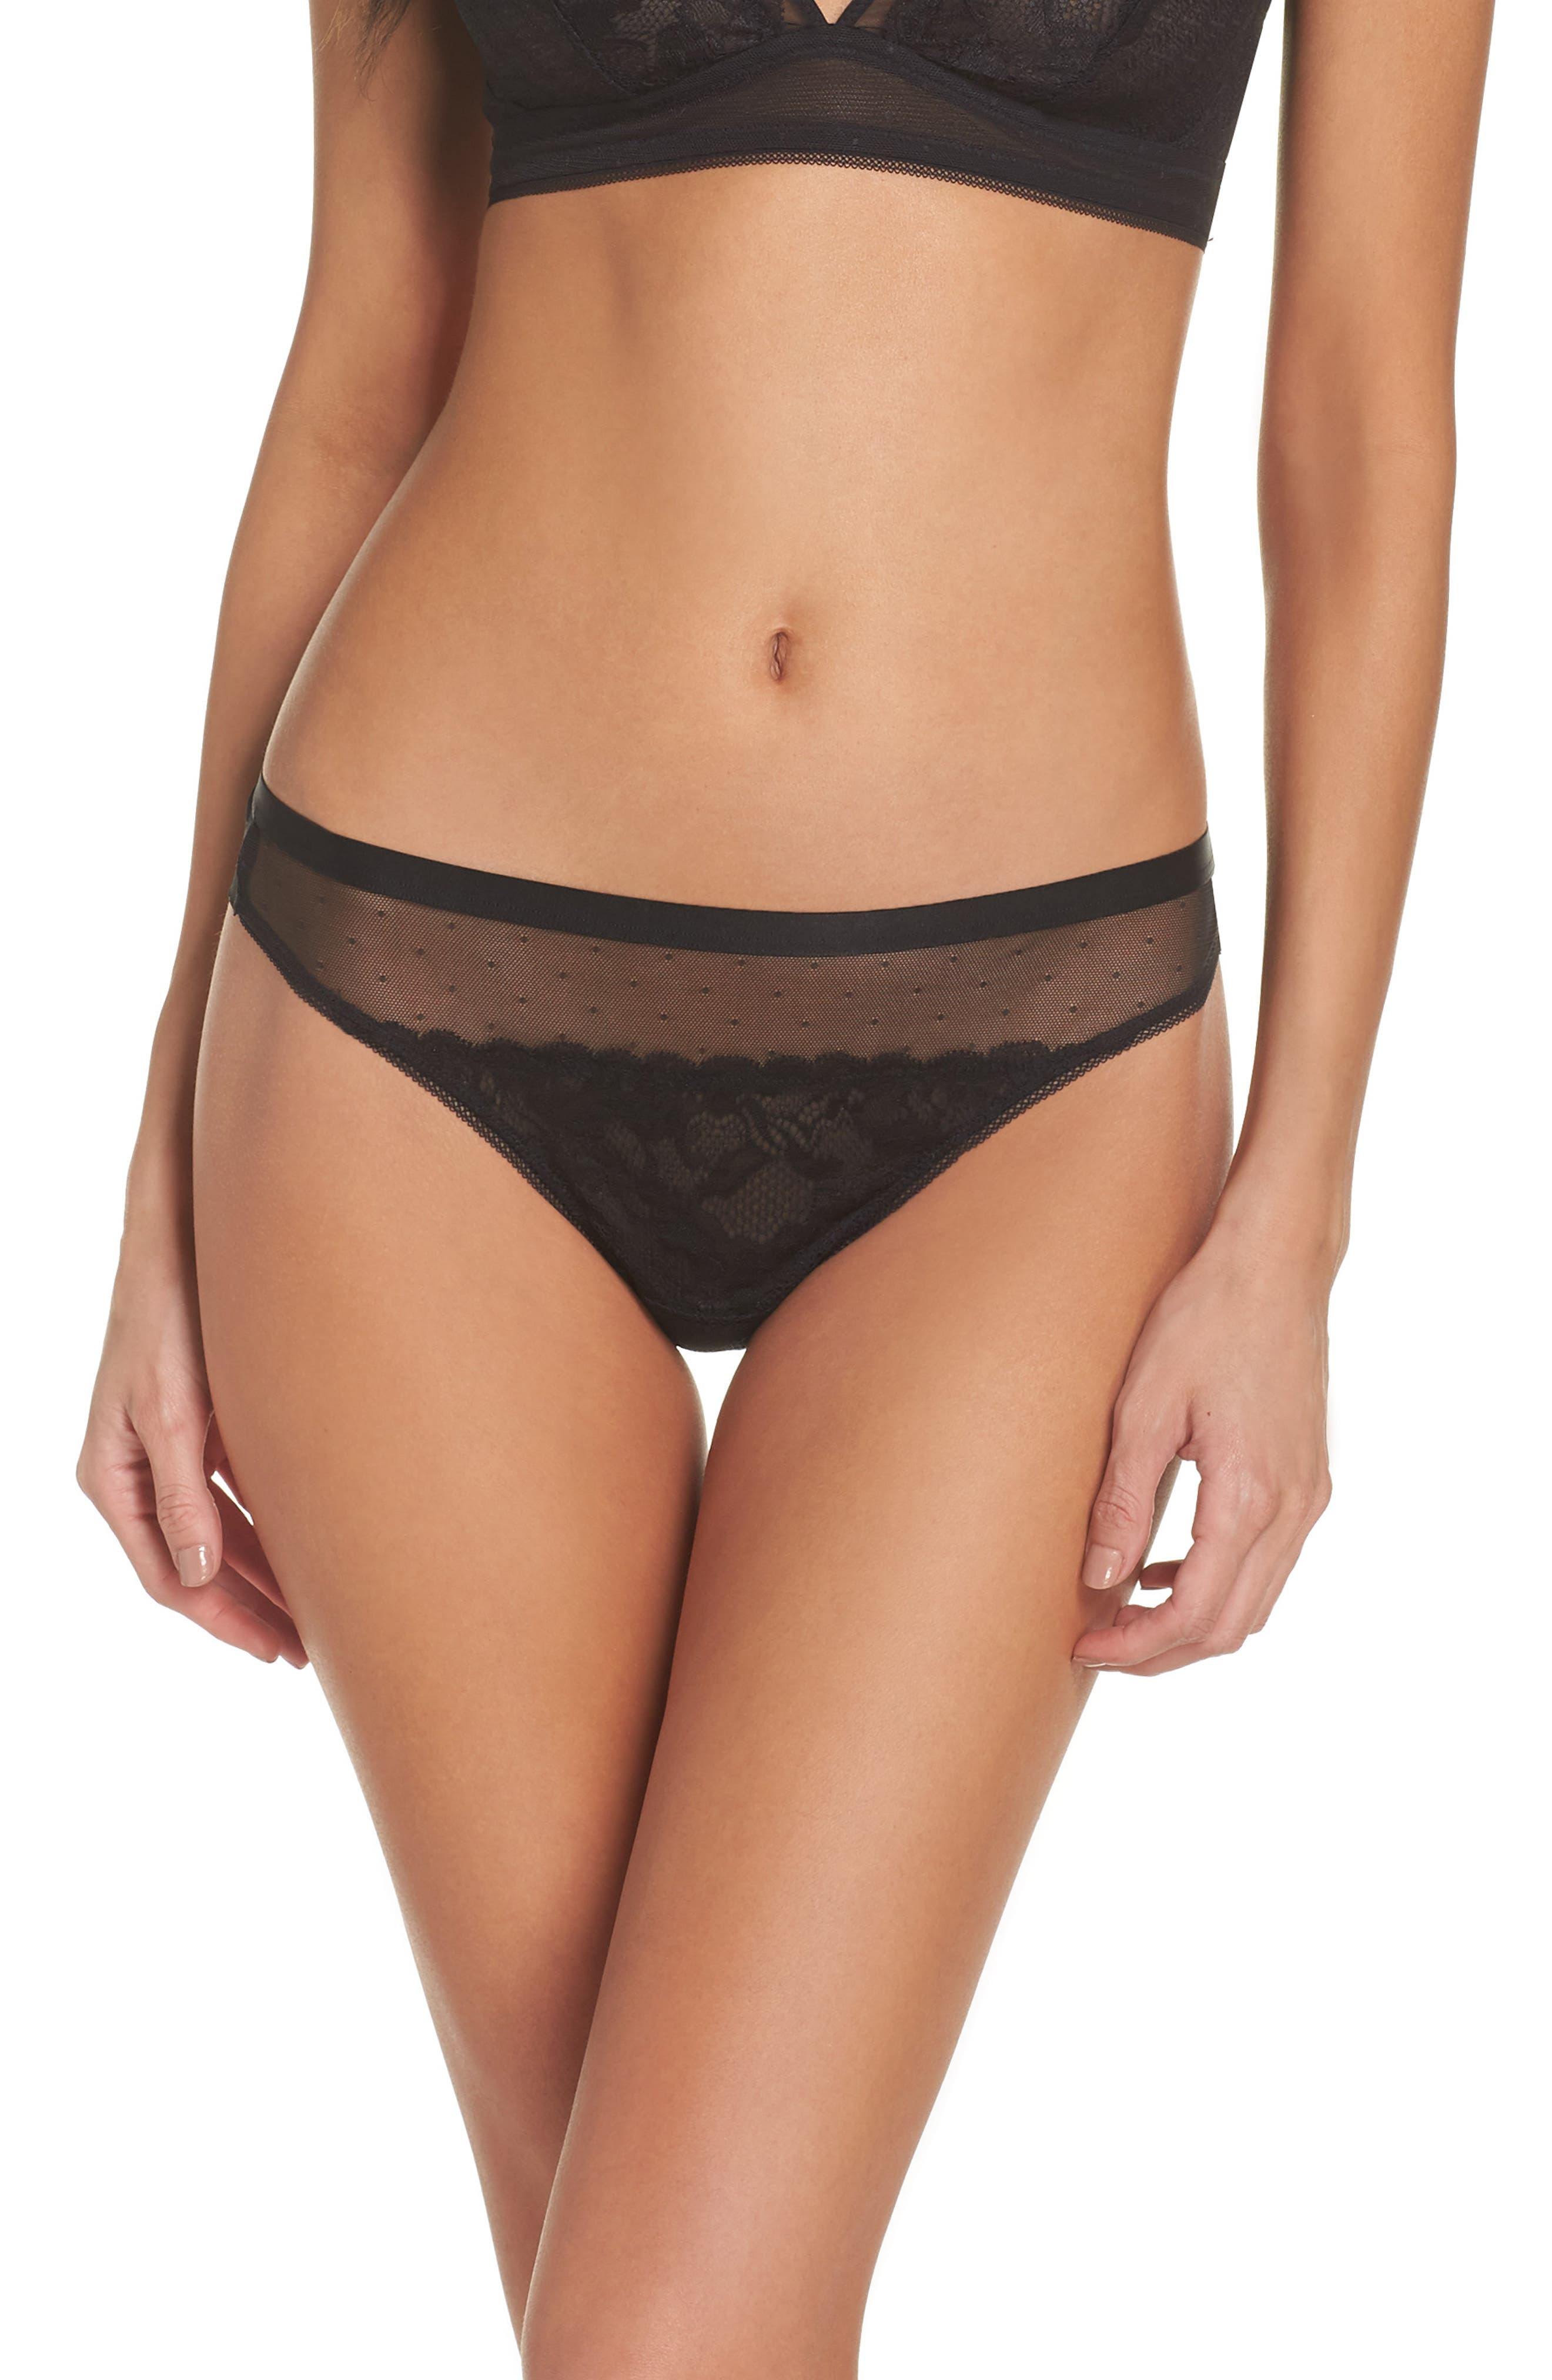 Pop Rocks Tanga,                             Main thumbnail 1, color,                             Black